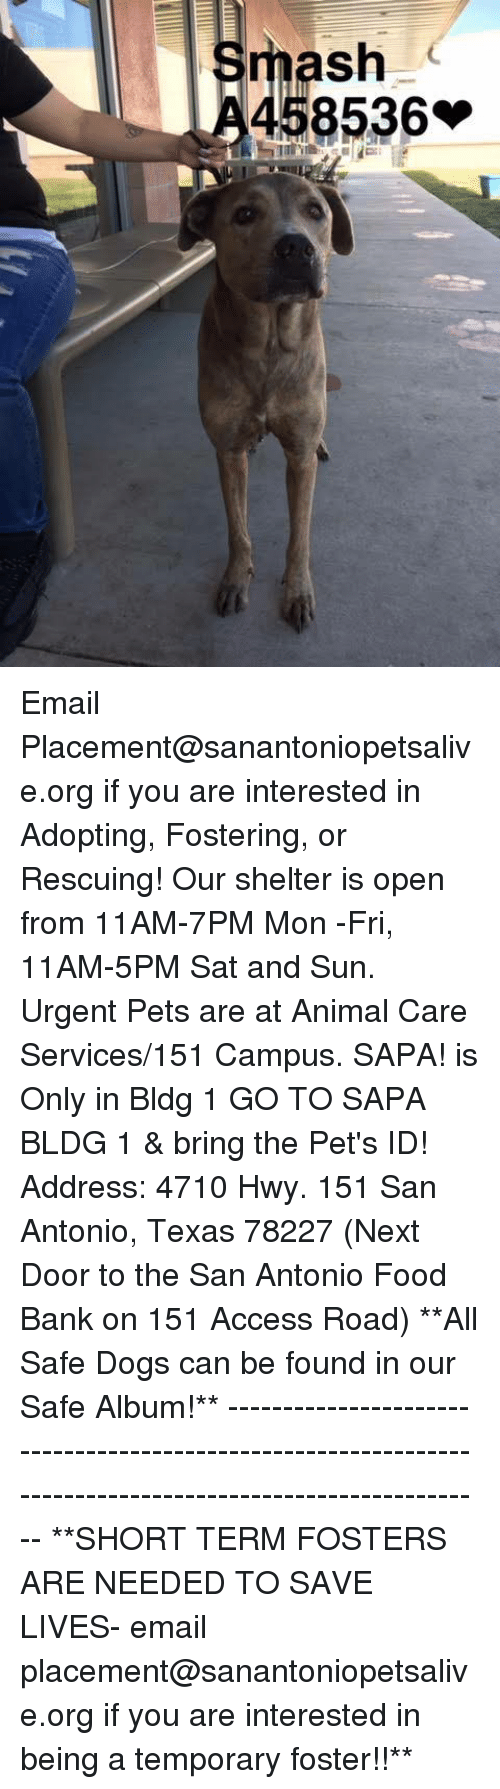 Dogs, Food, and Memes: mash  458536 Email Placement@sanantoniopetsalive.org if you are interested in Adopting, Fostering, or Rescuing!  Our shelter is open from 11AM-7PM Mon -Fri, 11AM-5PM Sat and Sun.  Urgent Pets are at Animal Care Services/151 Campus. SAPA! is Only in Bldg 1 GO TO SAPA BLDG 1 & bring the Pet's ID! Address: 4710 Hwy. 151 San Antonio, Texas 78227 (Next Door to the San Antonio Food Bank on 151 Access Road)  **All Safe Dogs can be found in our Safe Album!** ---------------------------------------------------------------------------------------------------------- **SHORT TERM FOSTERS ARE NEEDED TO SAVE LIVES- email placement@sanantoniopetsalive.org if you are interested in being a temporary foster!!**